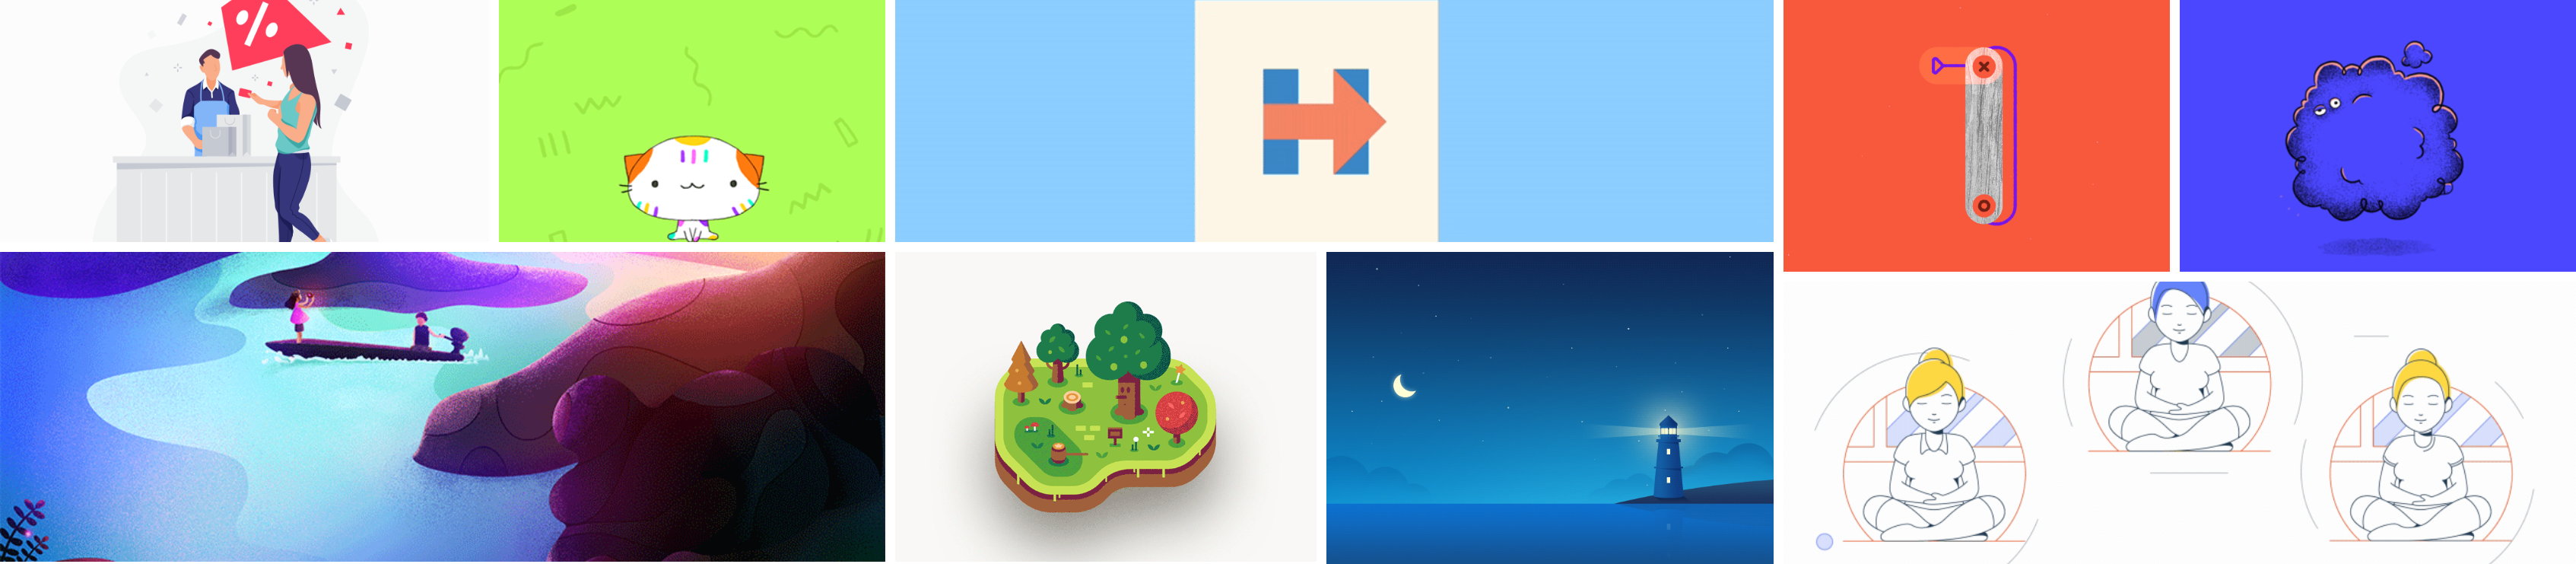 Motion Graphic Inspirations – Week 4